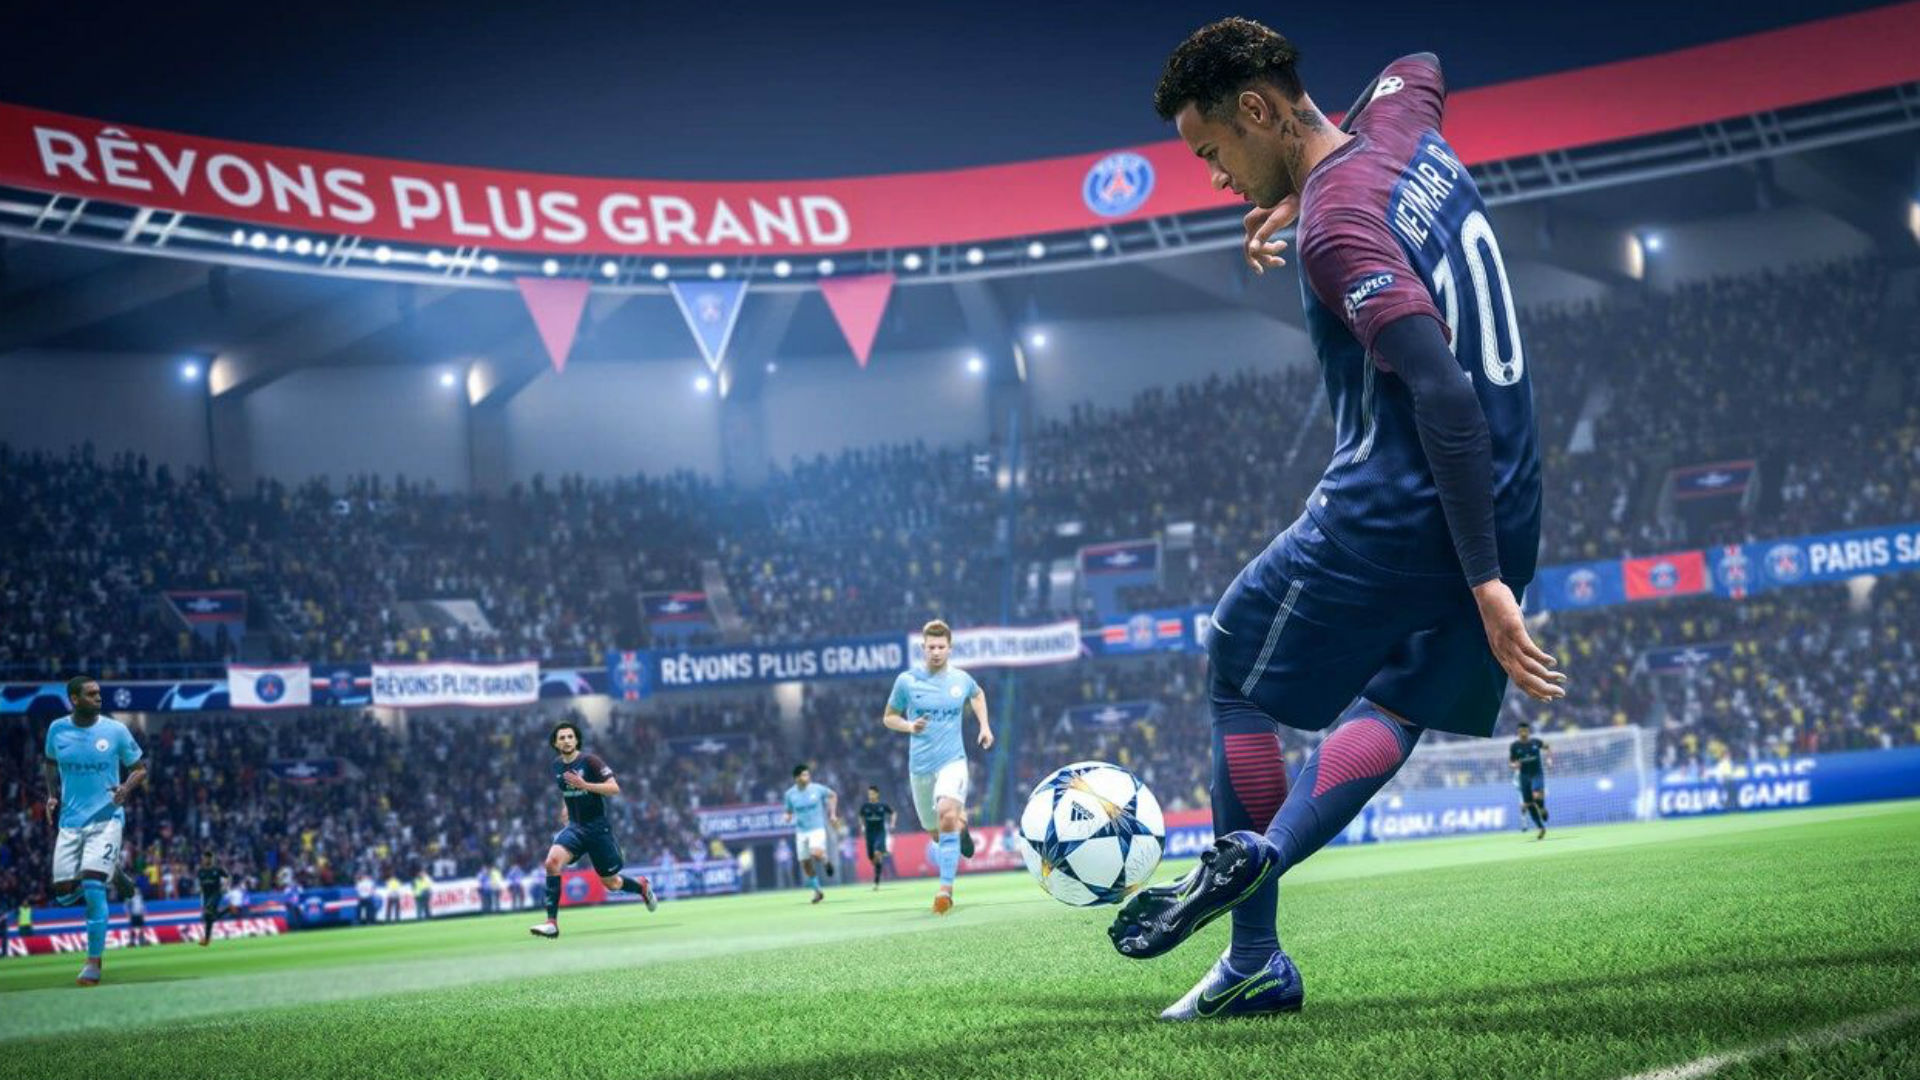 FIFA 20: What gameplay improvements and changes are in the new game?